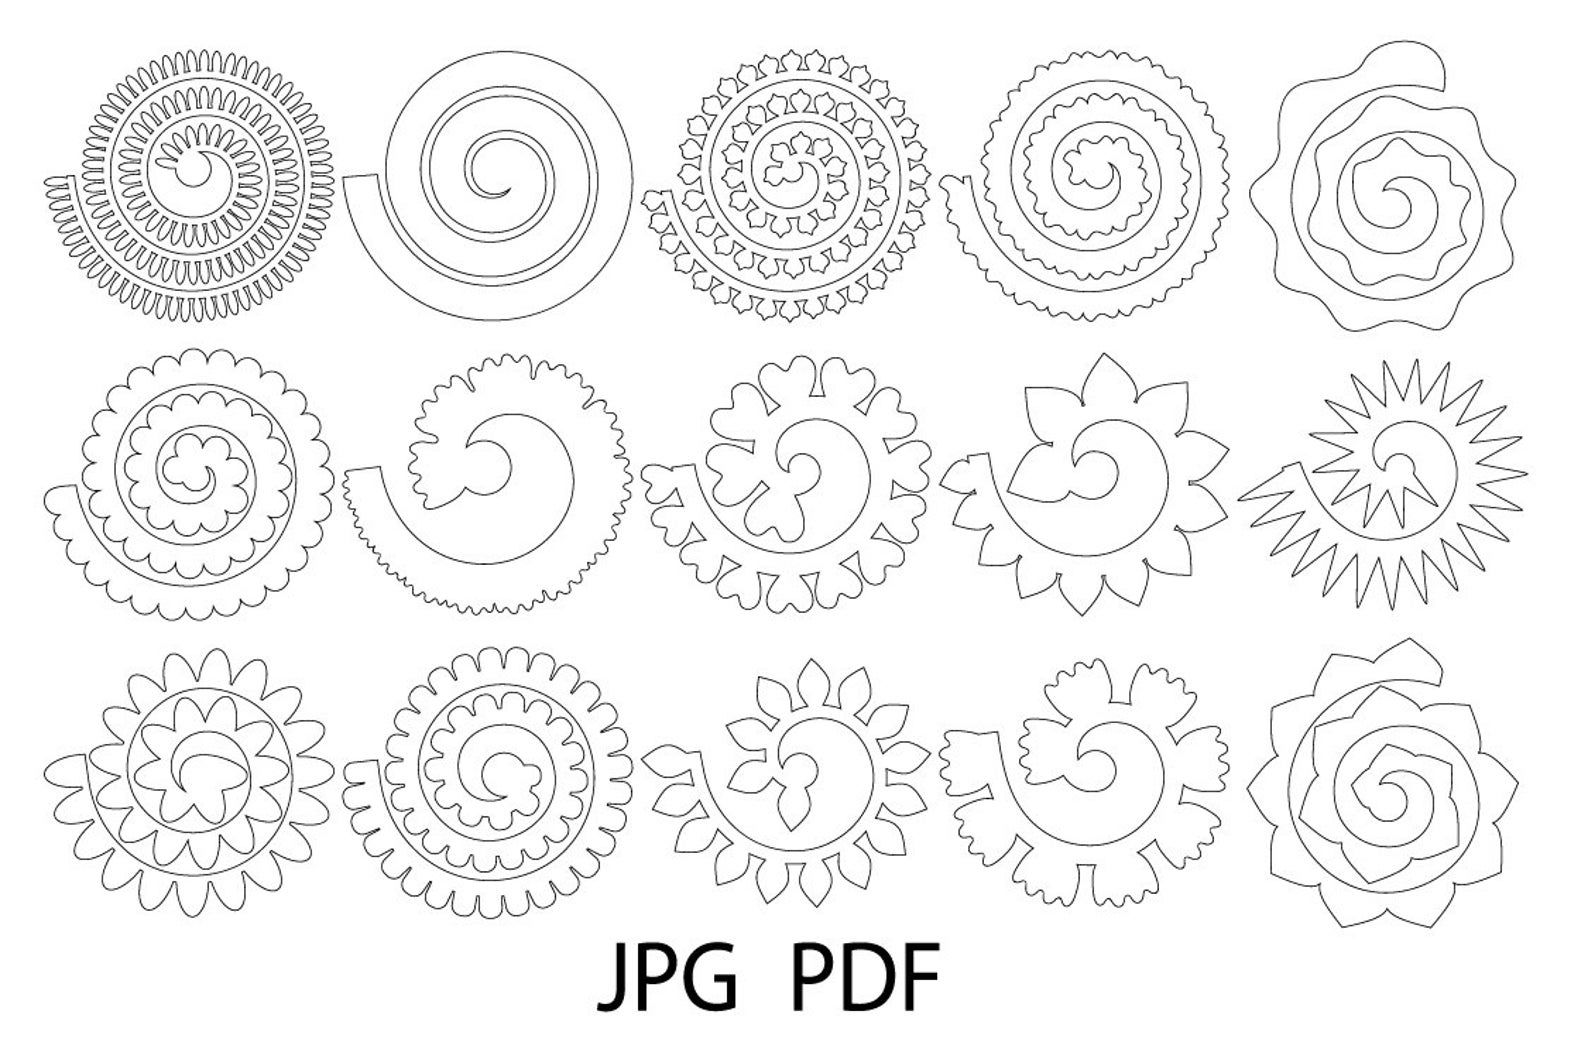 Rolled Flower Svg, Flowers Template, Rolled Paper Flowers Svg, Flowers svg, Rolled Flower Cut File, 3d Rose Svg, Rolled Paper Flower,Origami